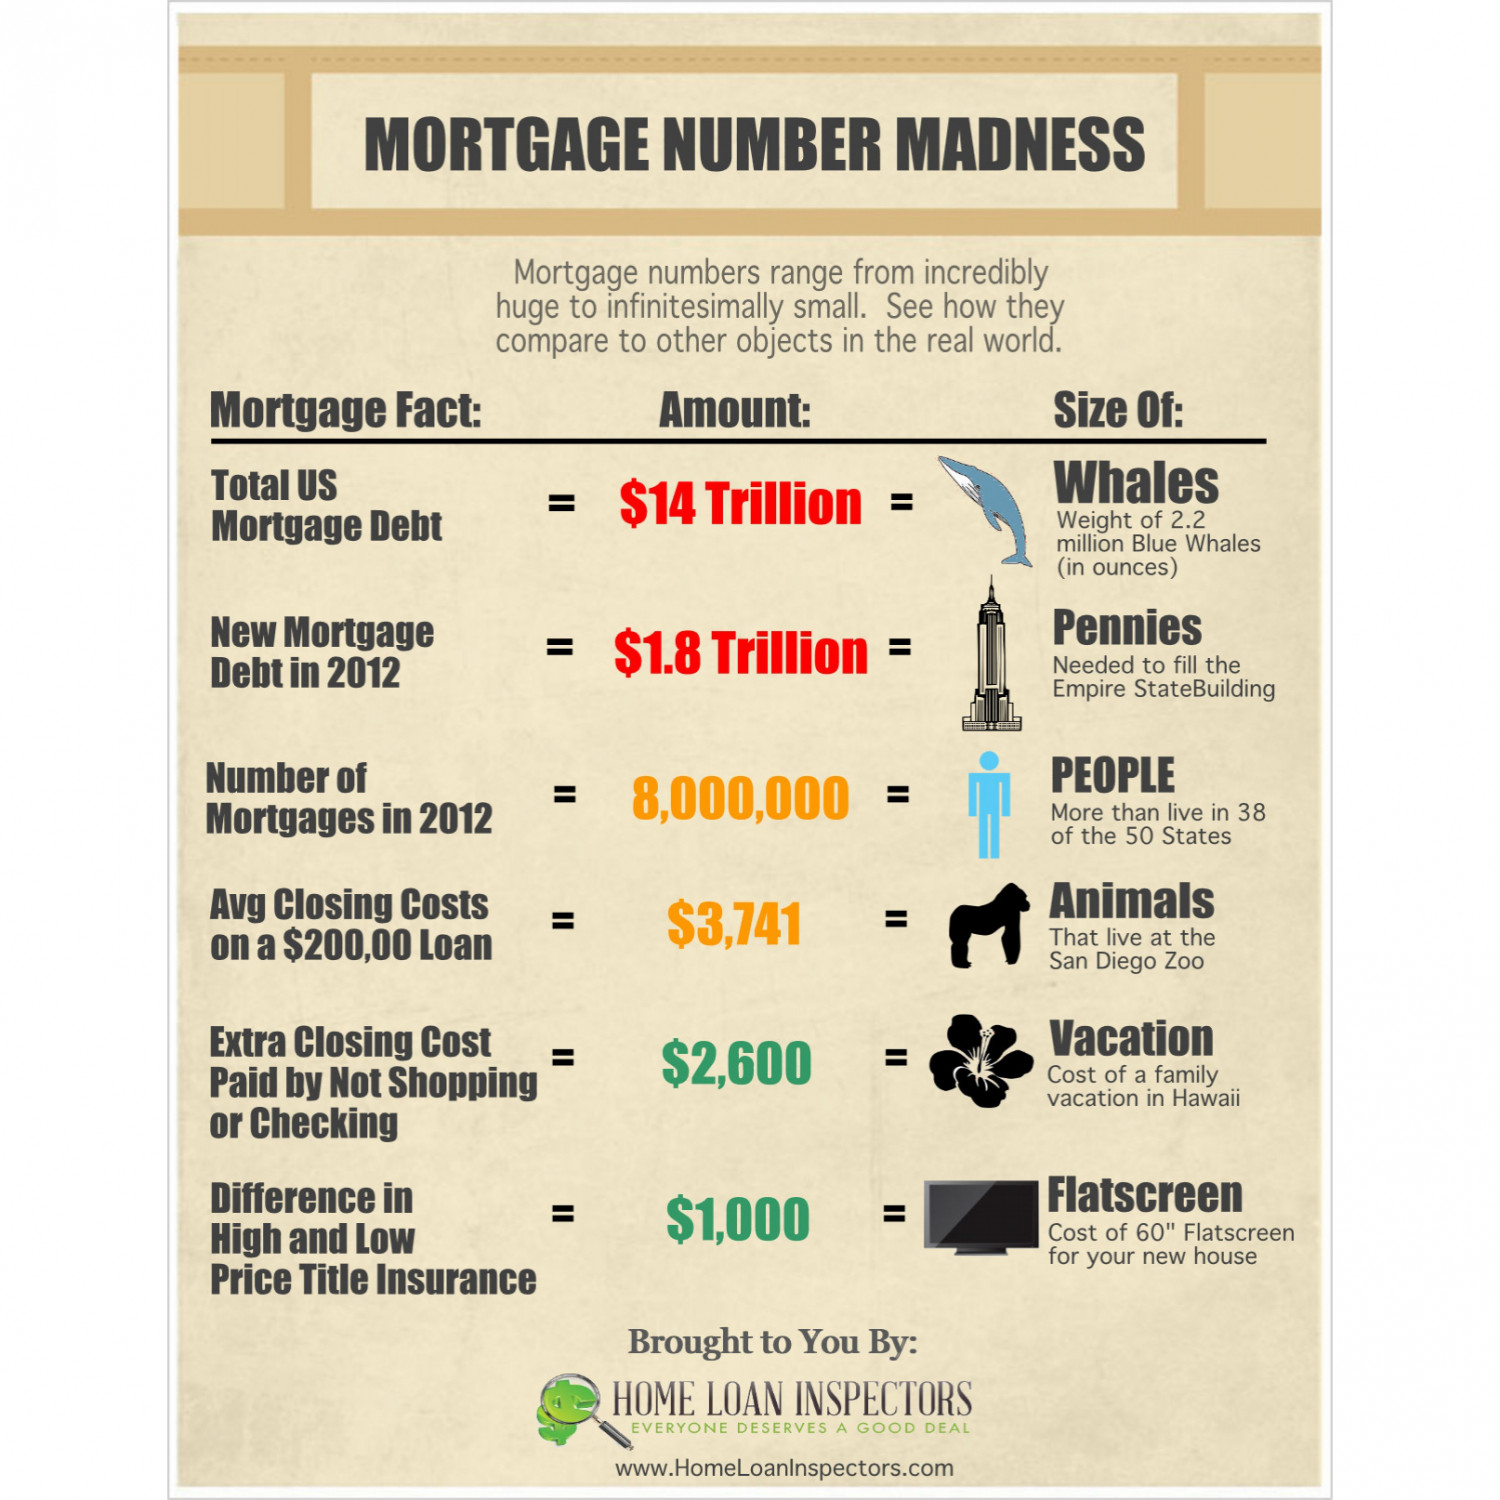 Mortgage Number Madness Infographic